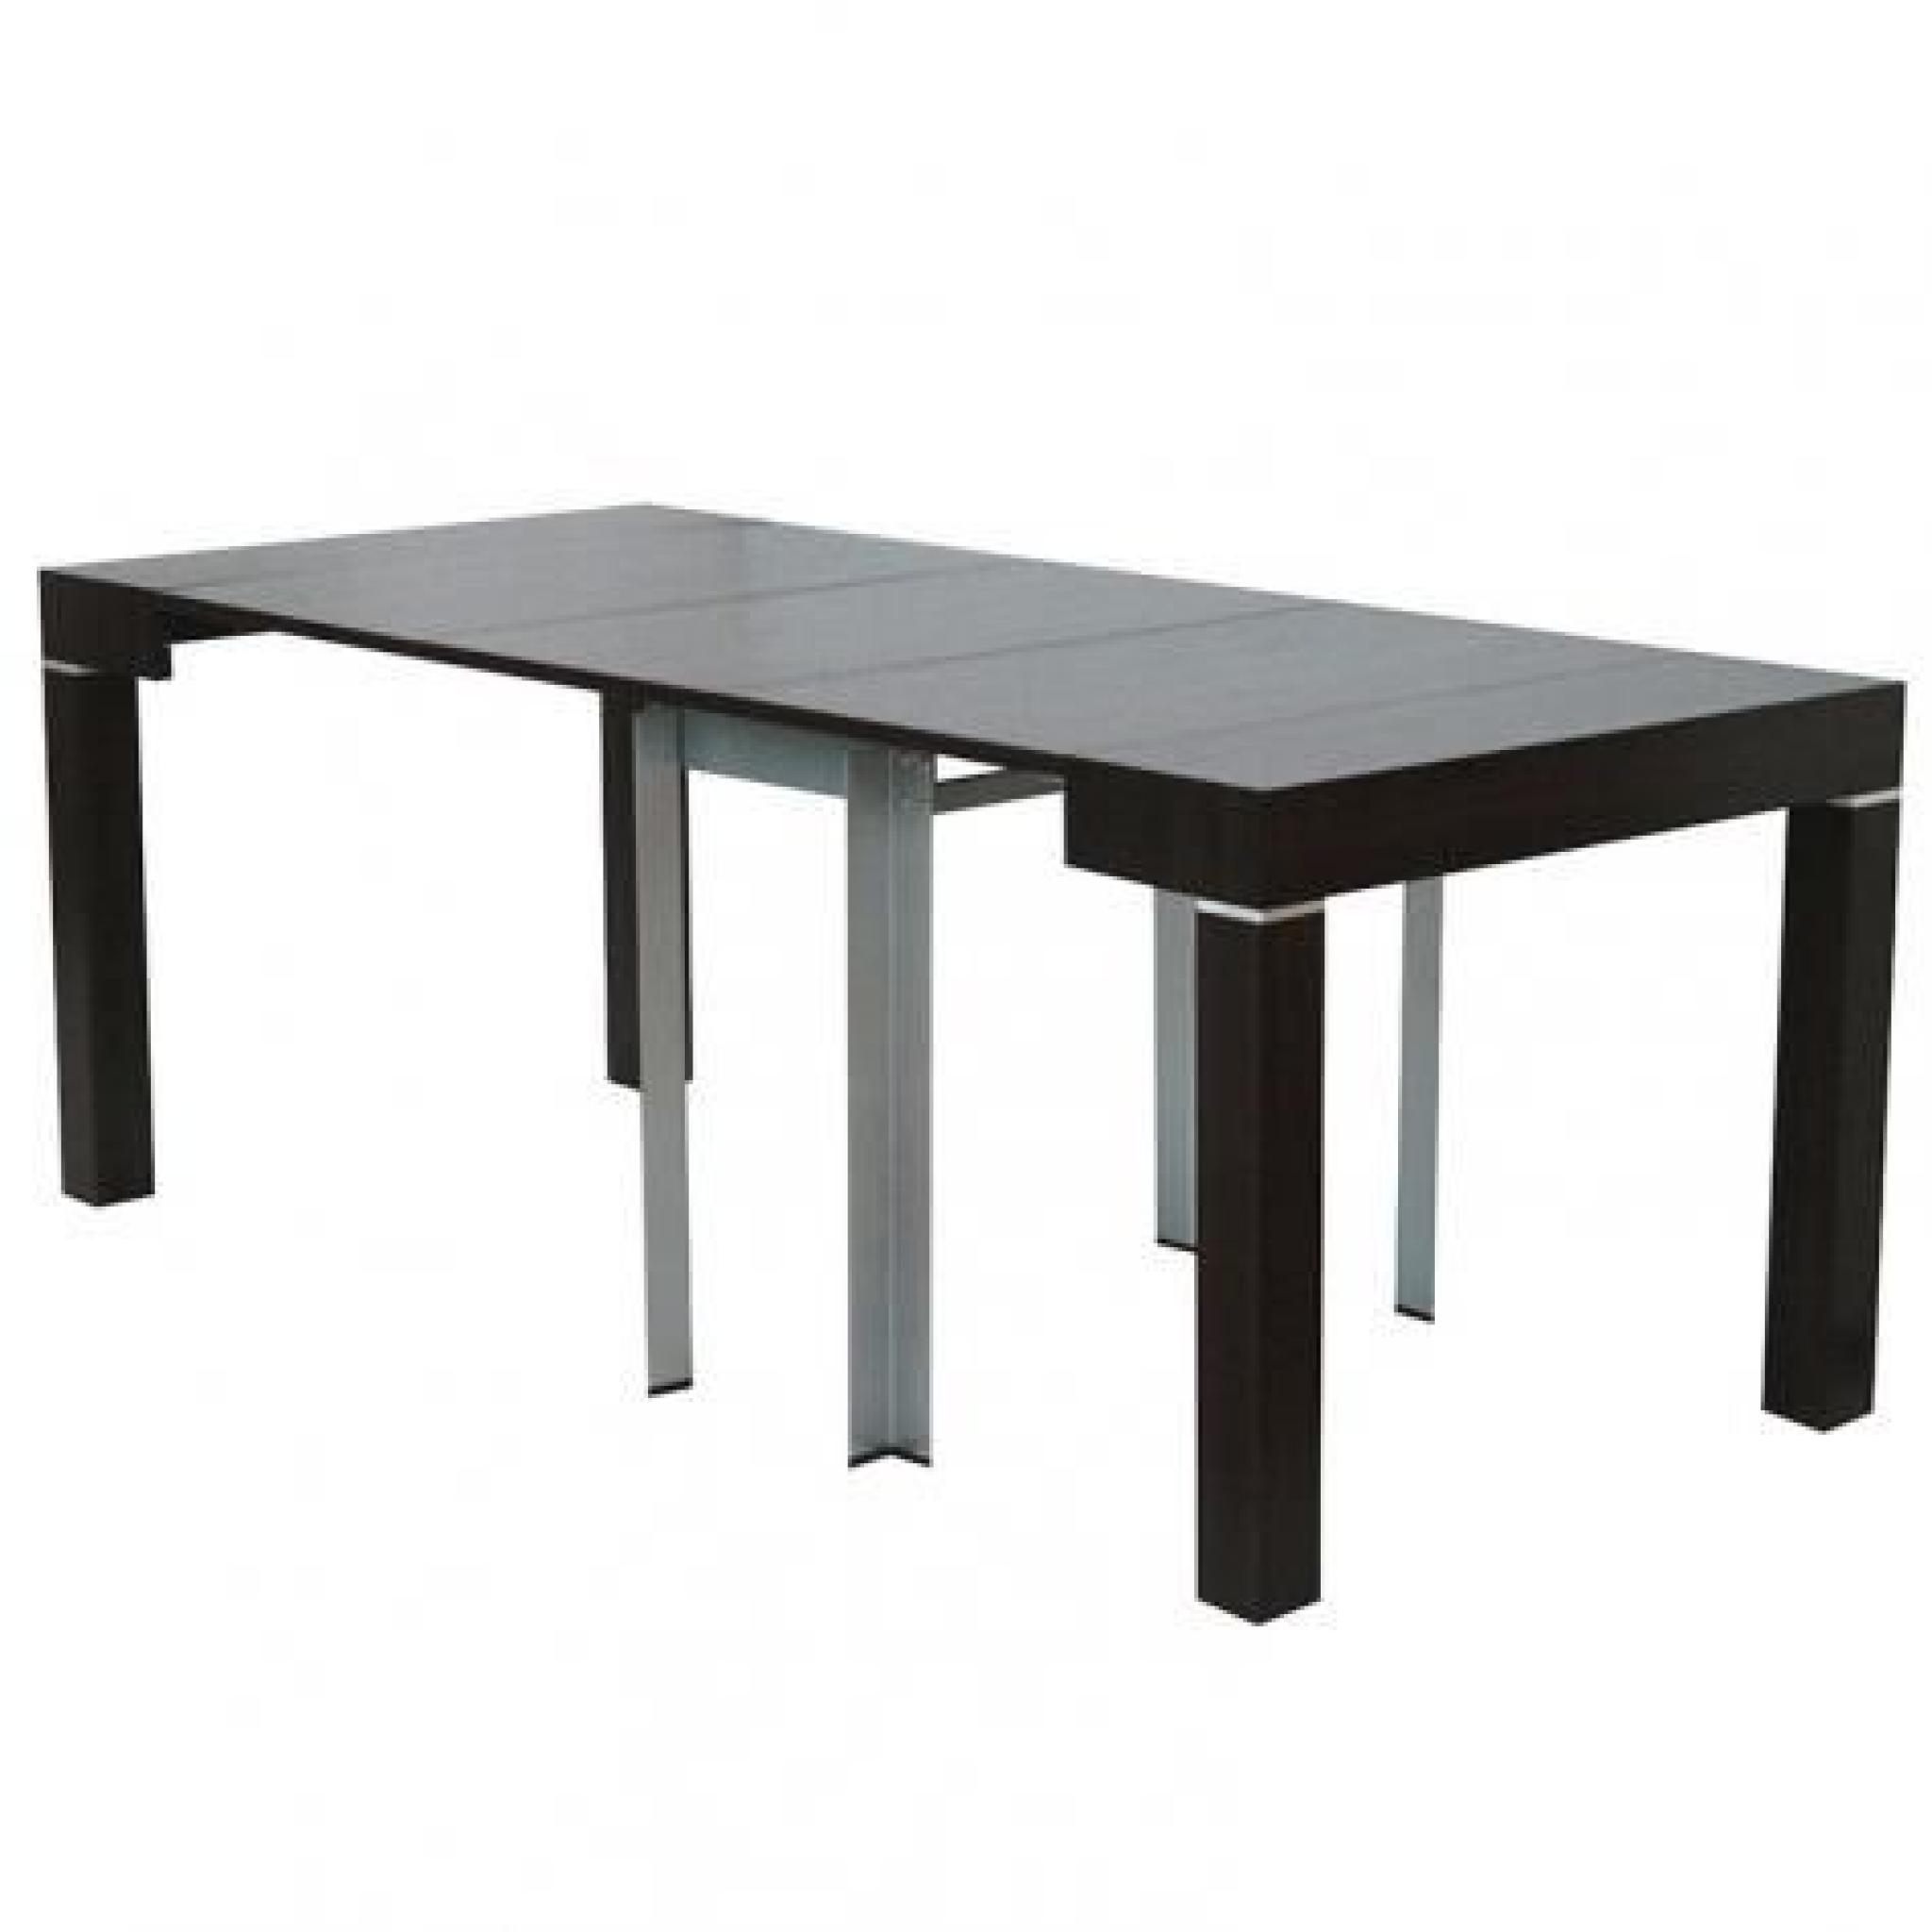 Table console extensible wenge avec 4 rallonges alesia for Table informatique pas cher